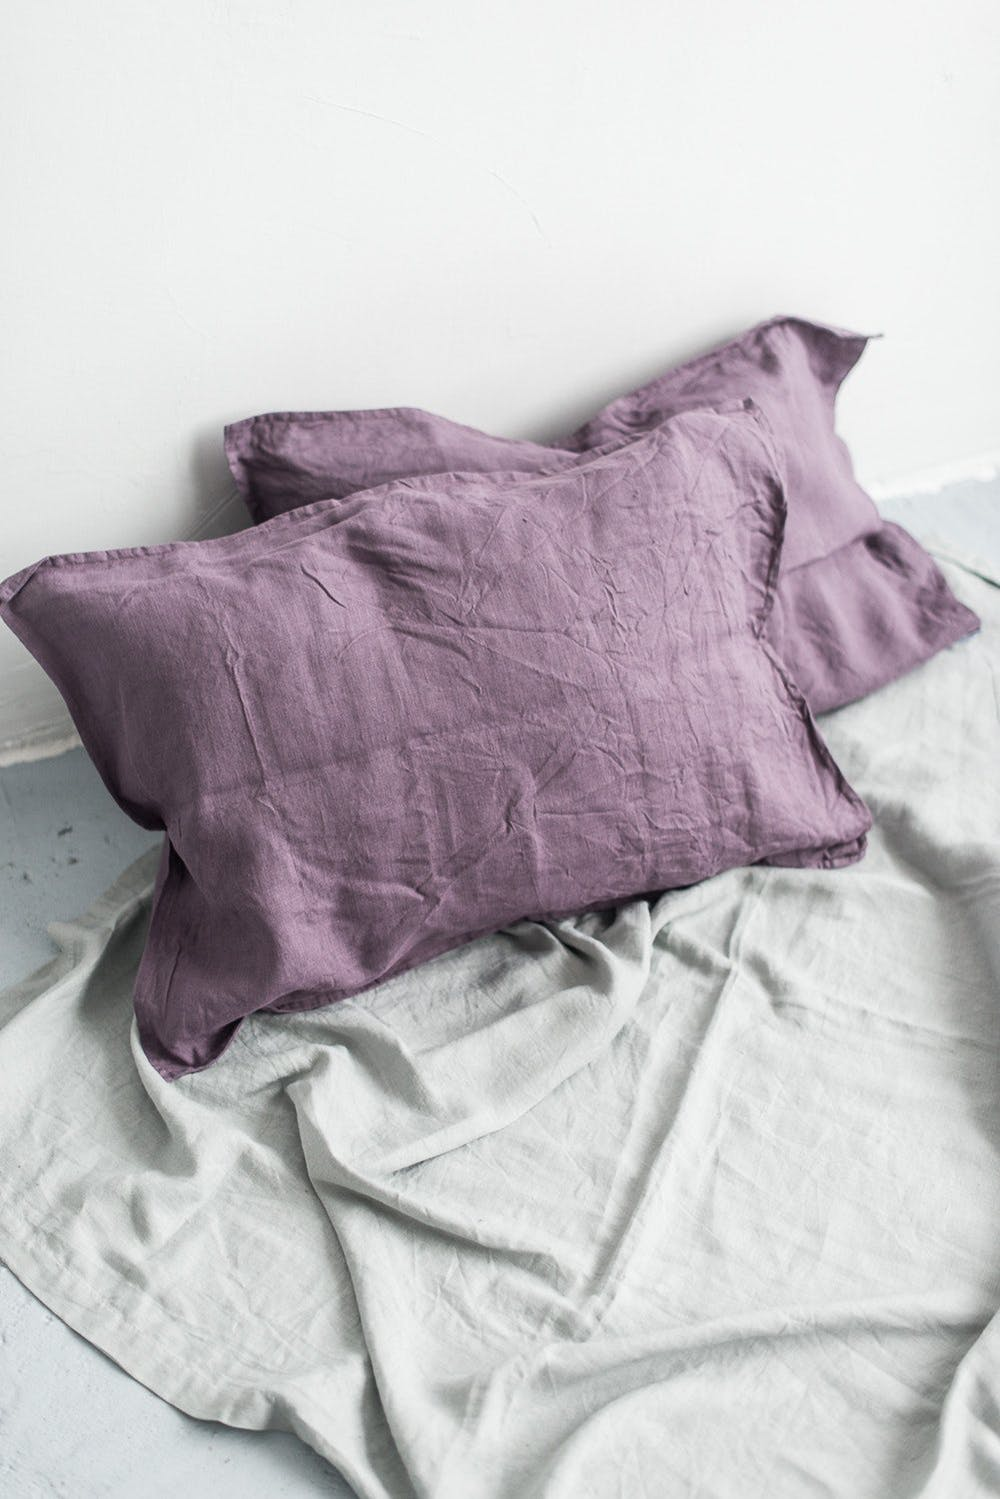 Line Fox's dusty lavender pillow cases light gray bed linen